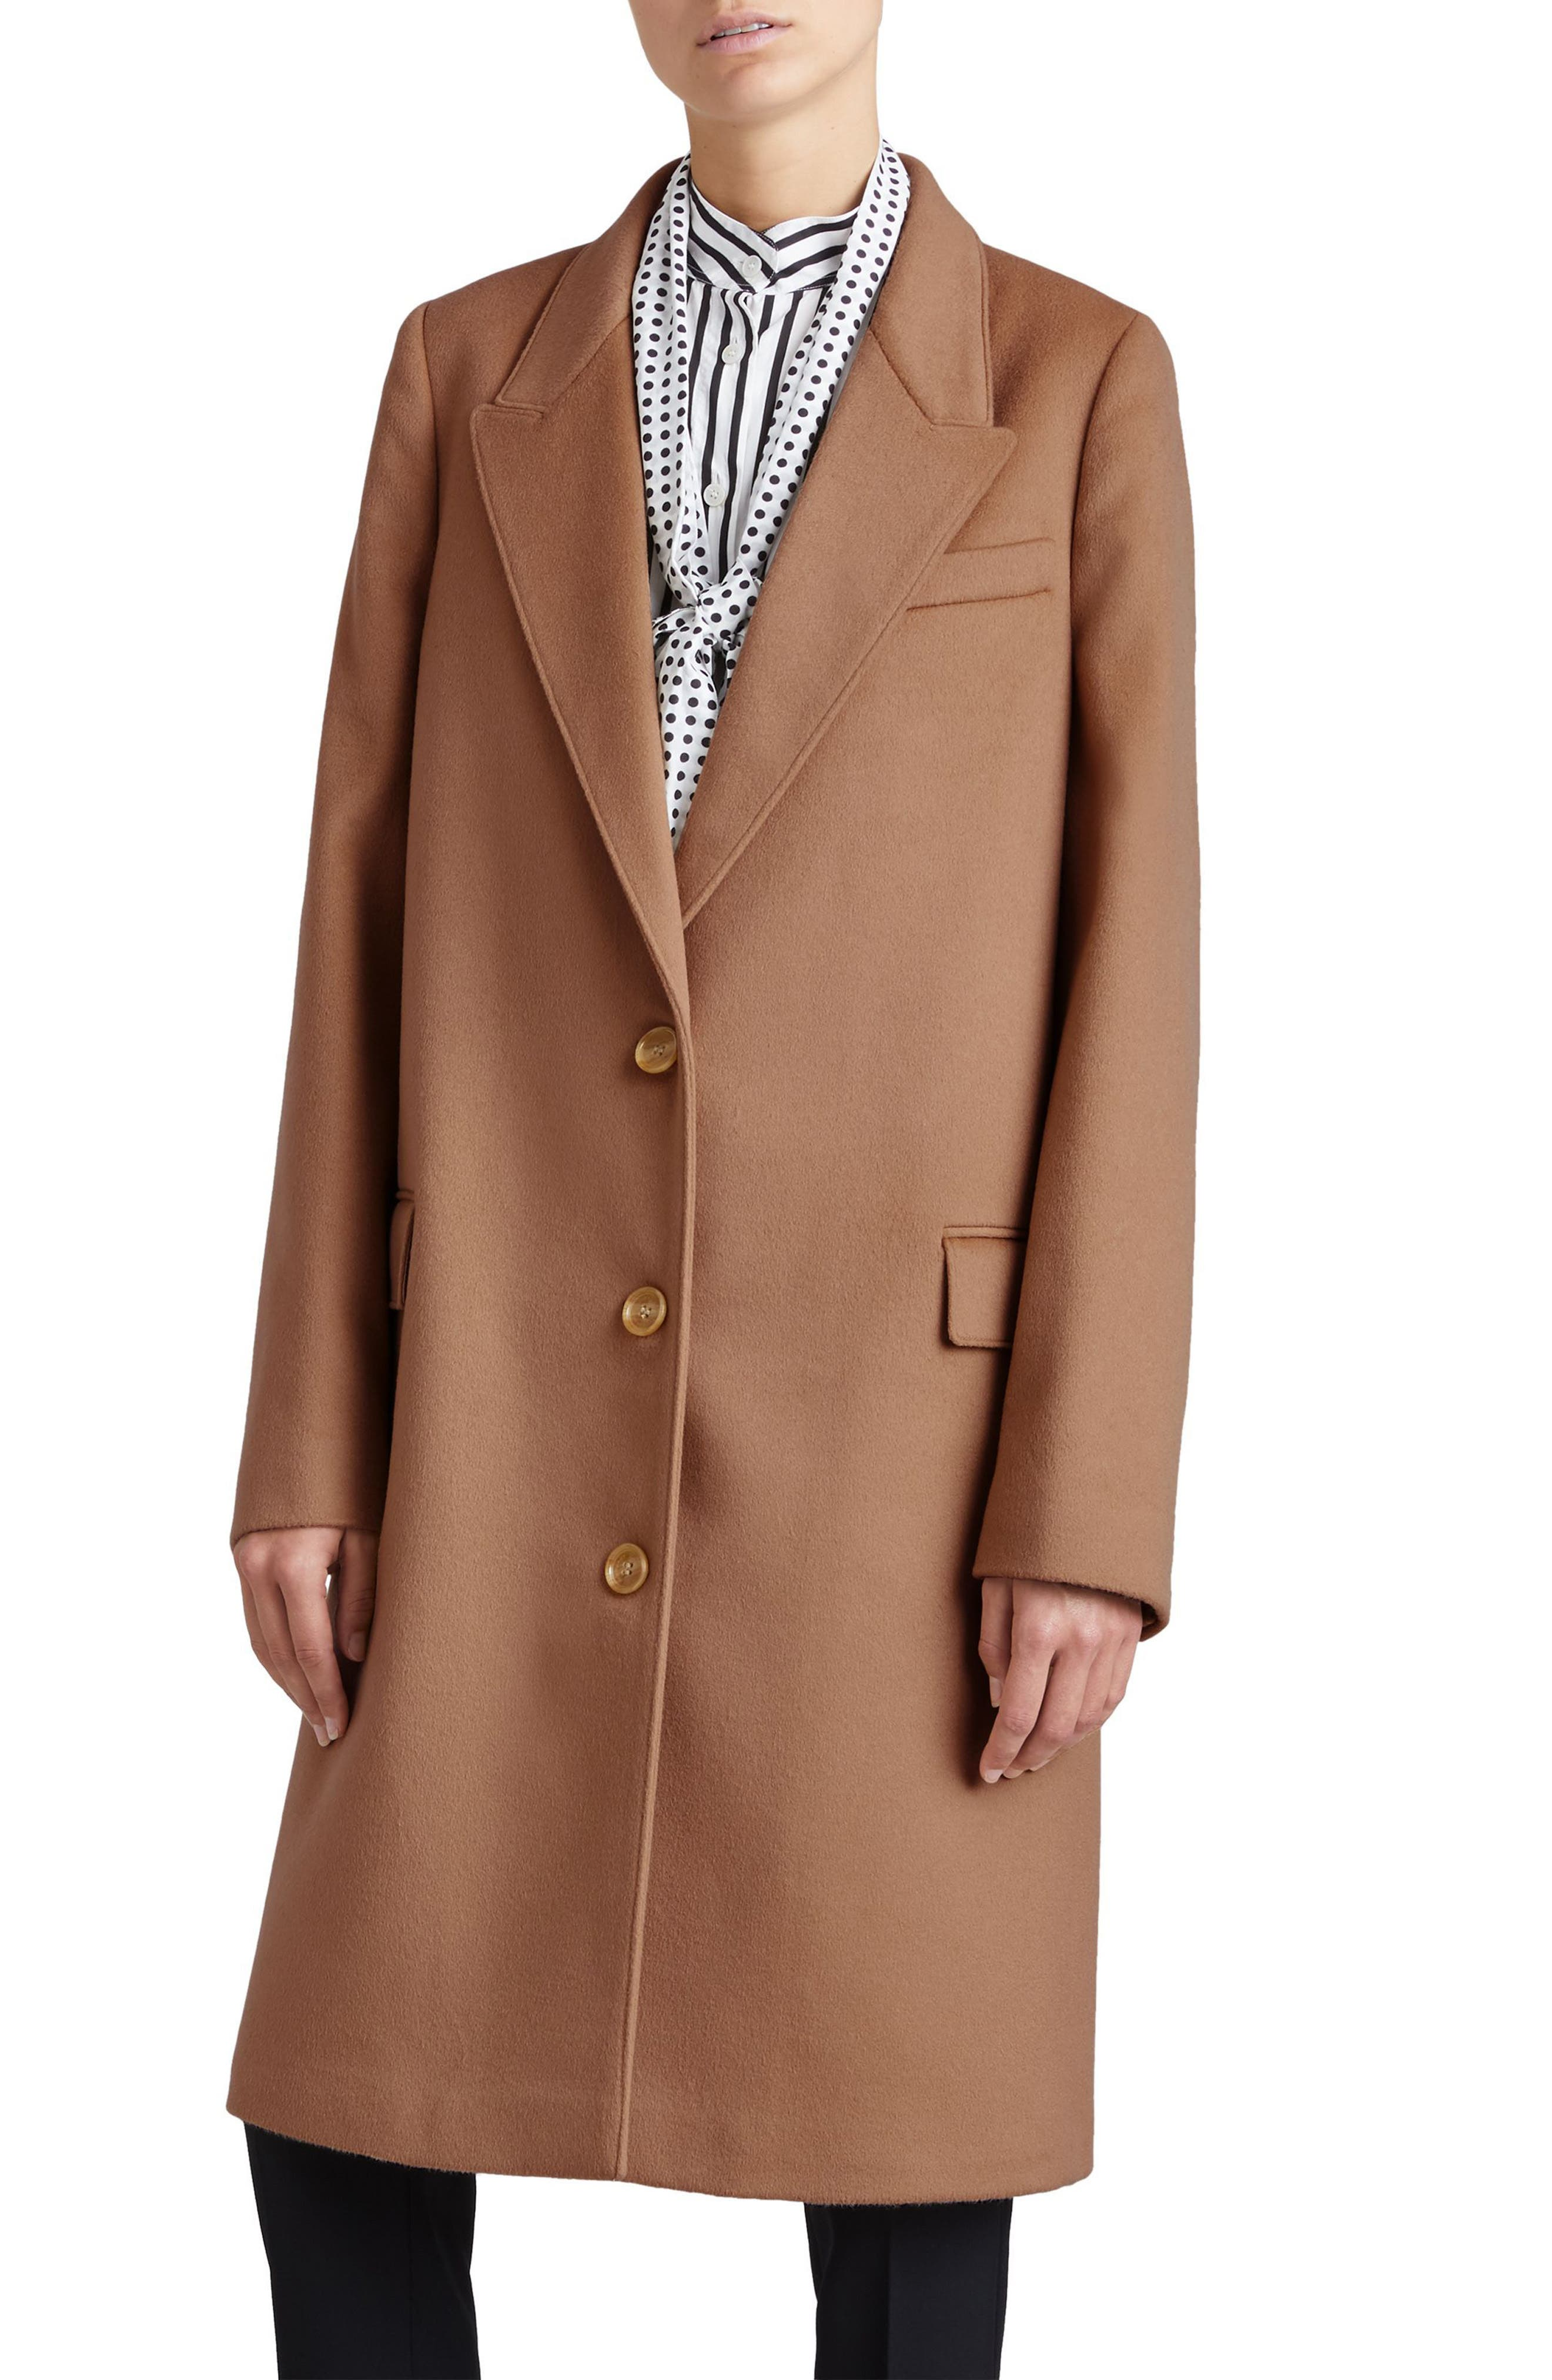 Fellhurst Wool & Cashmere Coat,                             Main thumbnail 1, color,                             Camel